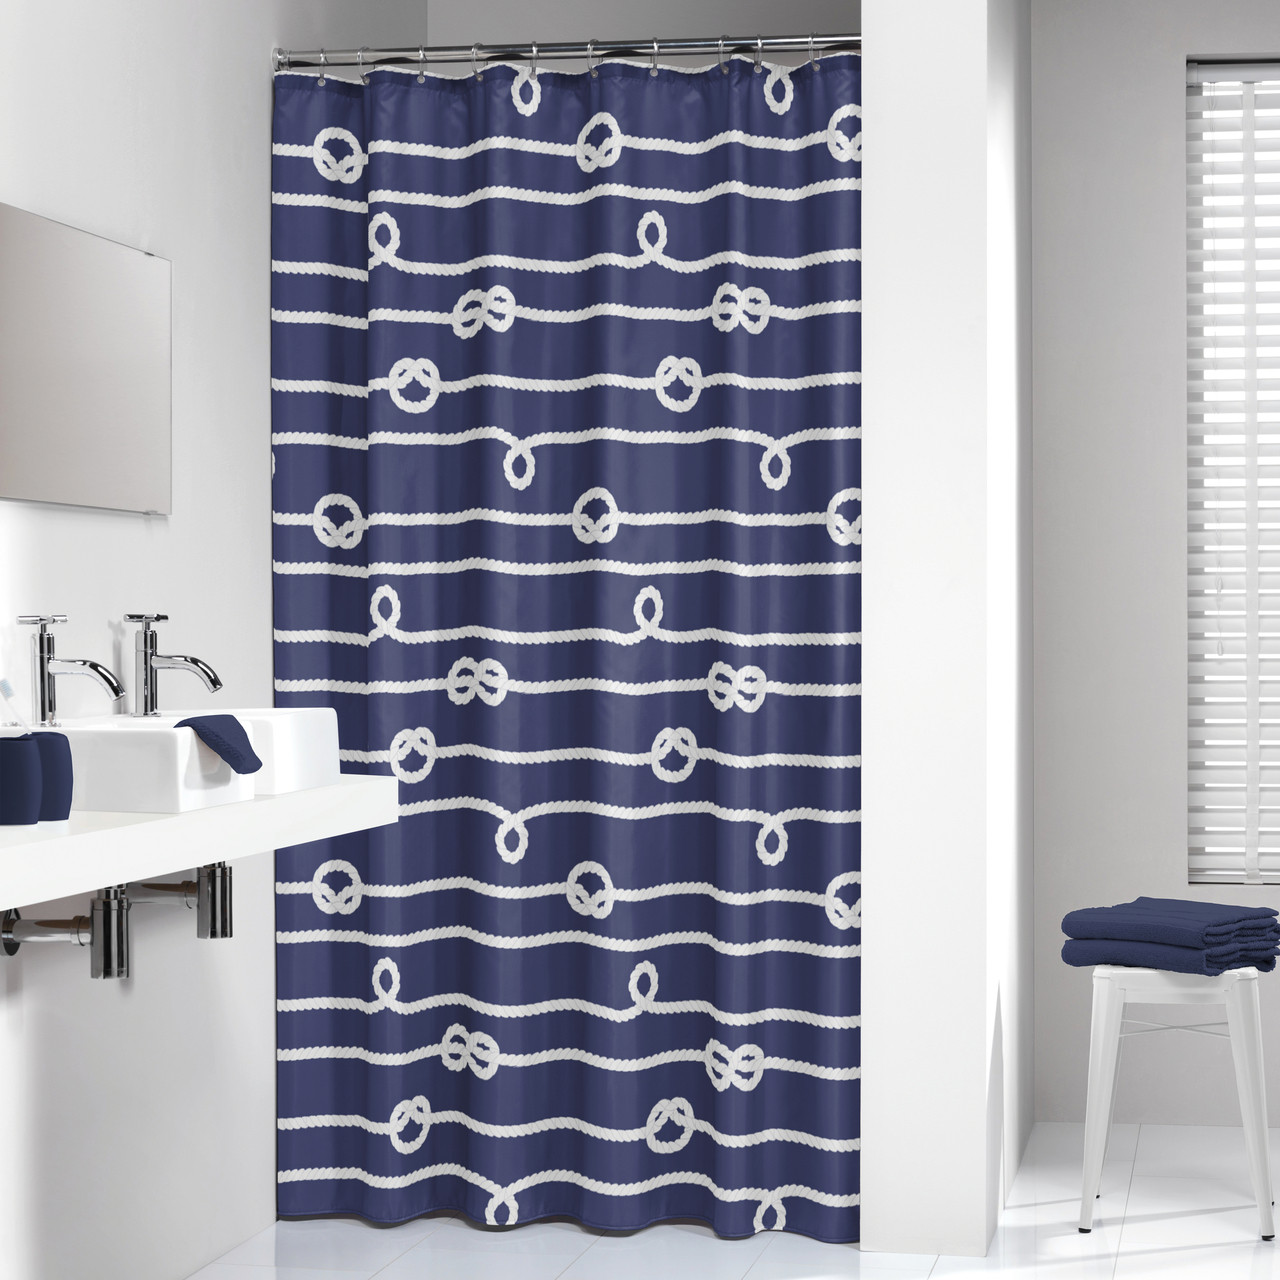 Rope Curtain Extra Long Shower Curtain 72 X 78 Inch Sealskin Nautical Rope Blue Fabric